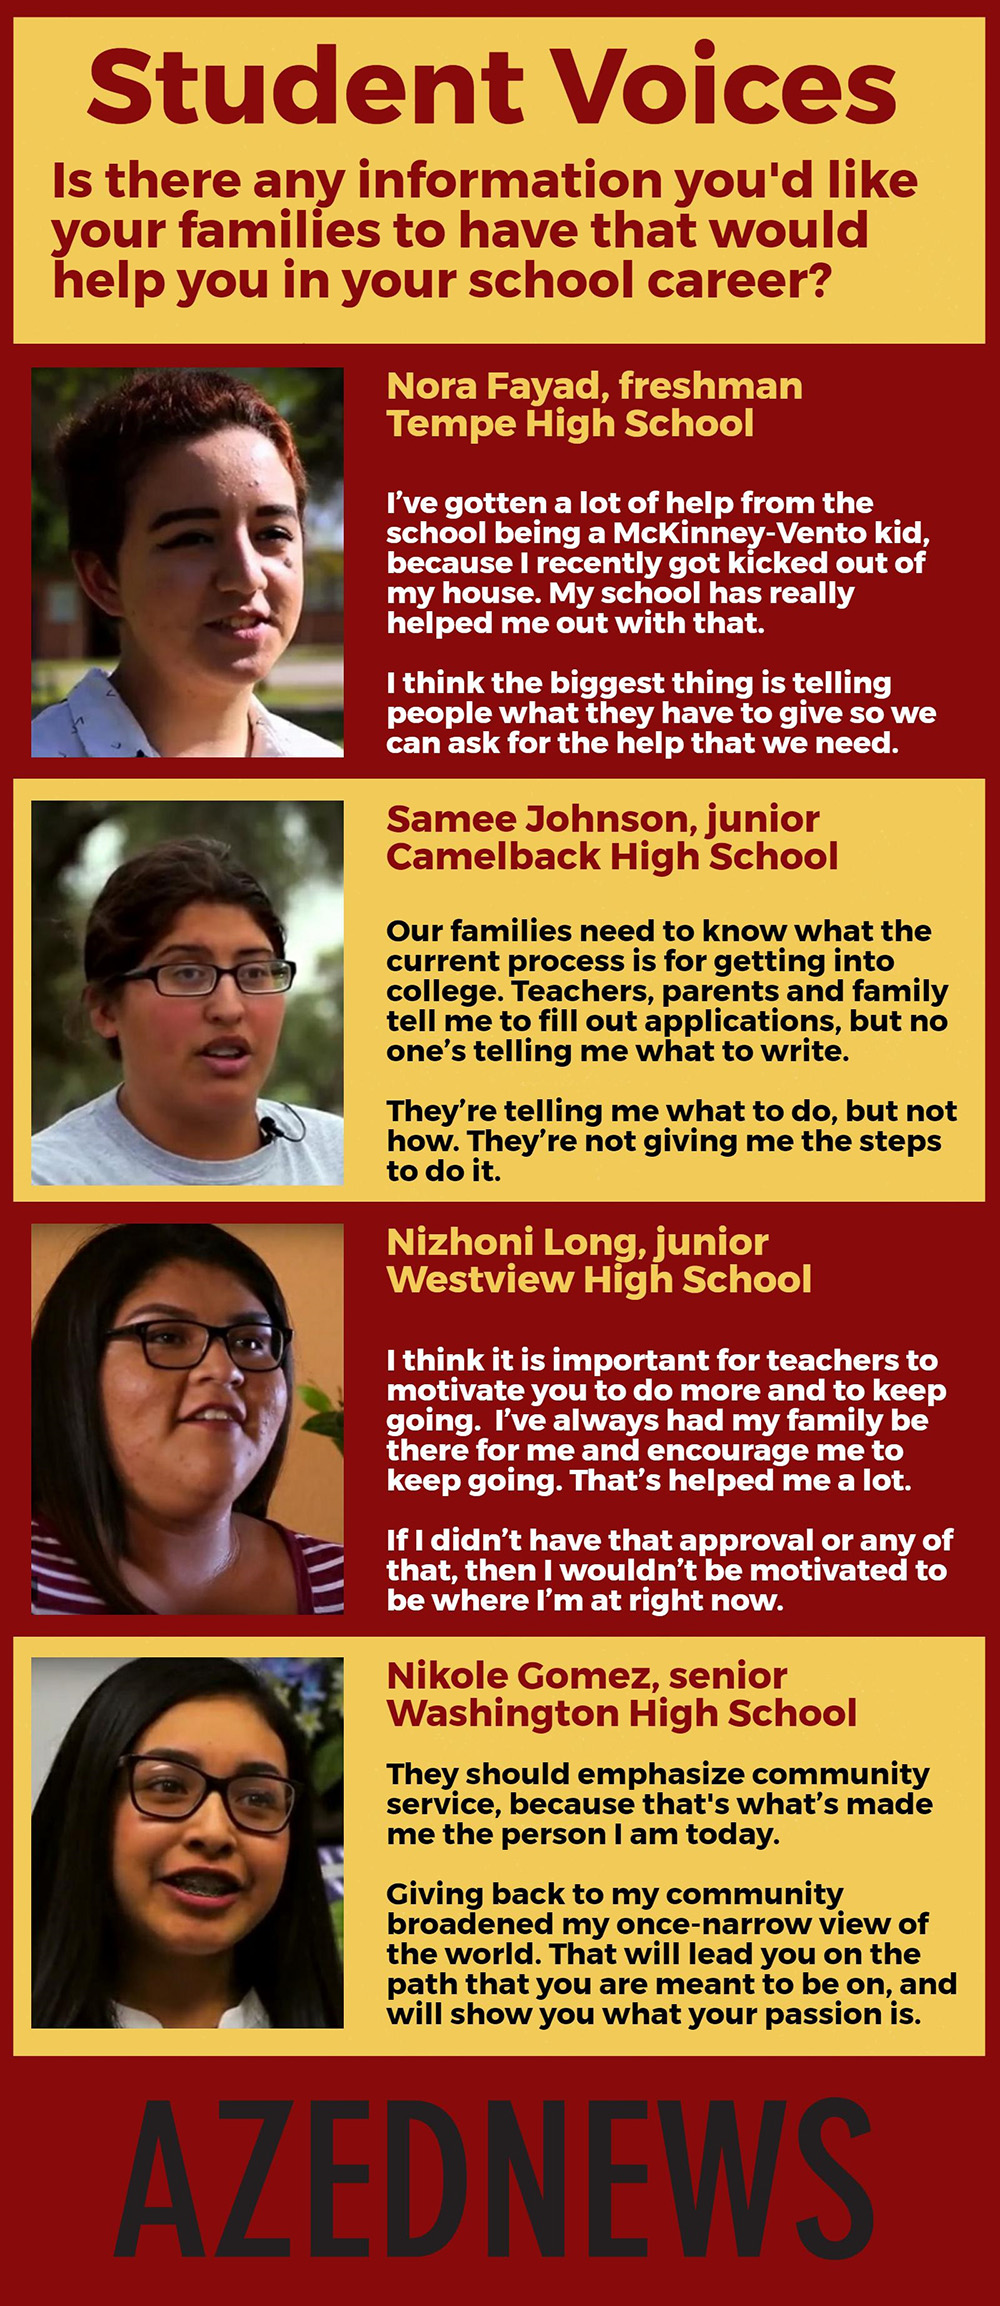 Students share how school support helped them succeed (+ Videos, Infographic) AZEdNewsStudentVoicesInfographic